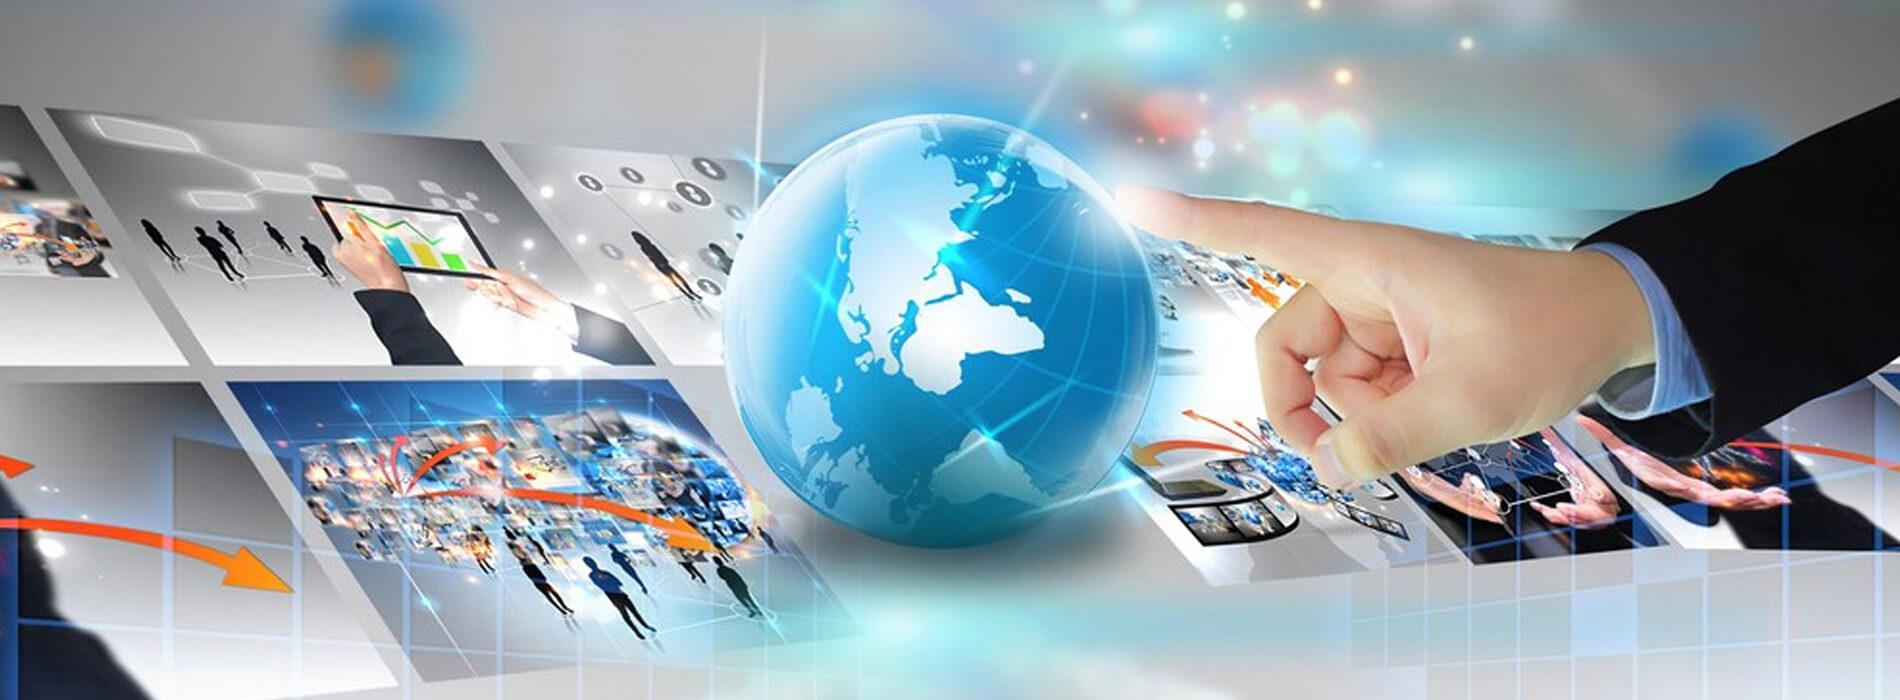 High-Quality Translation Services at Your Fingertips